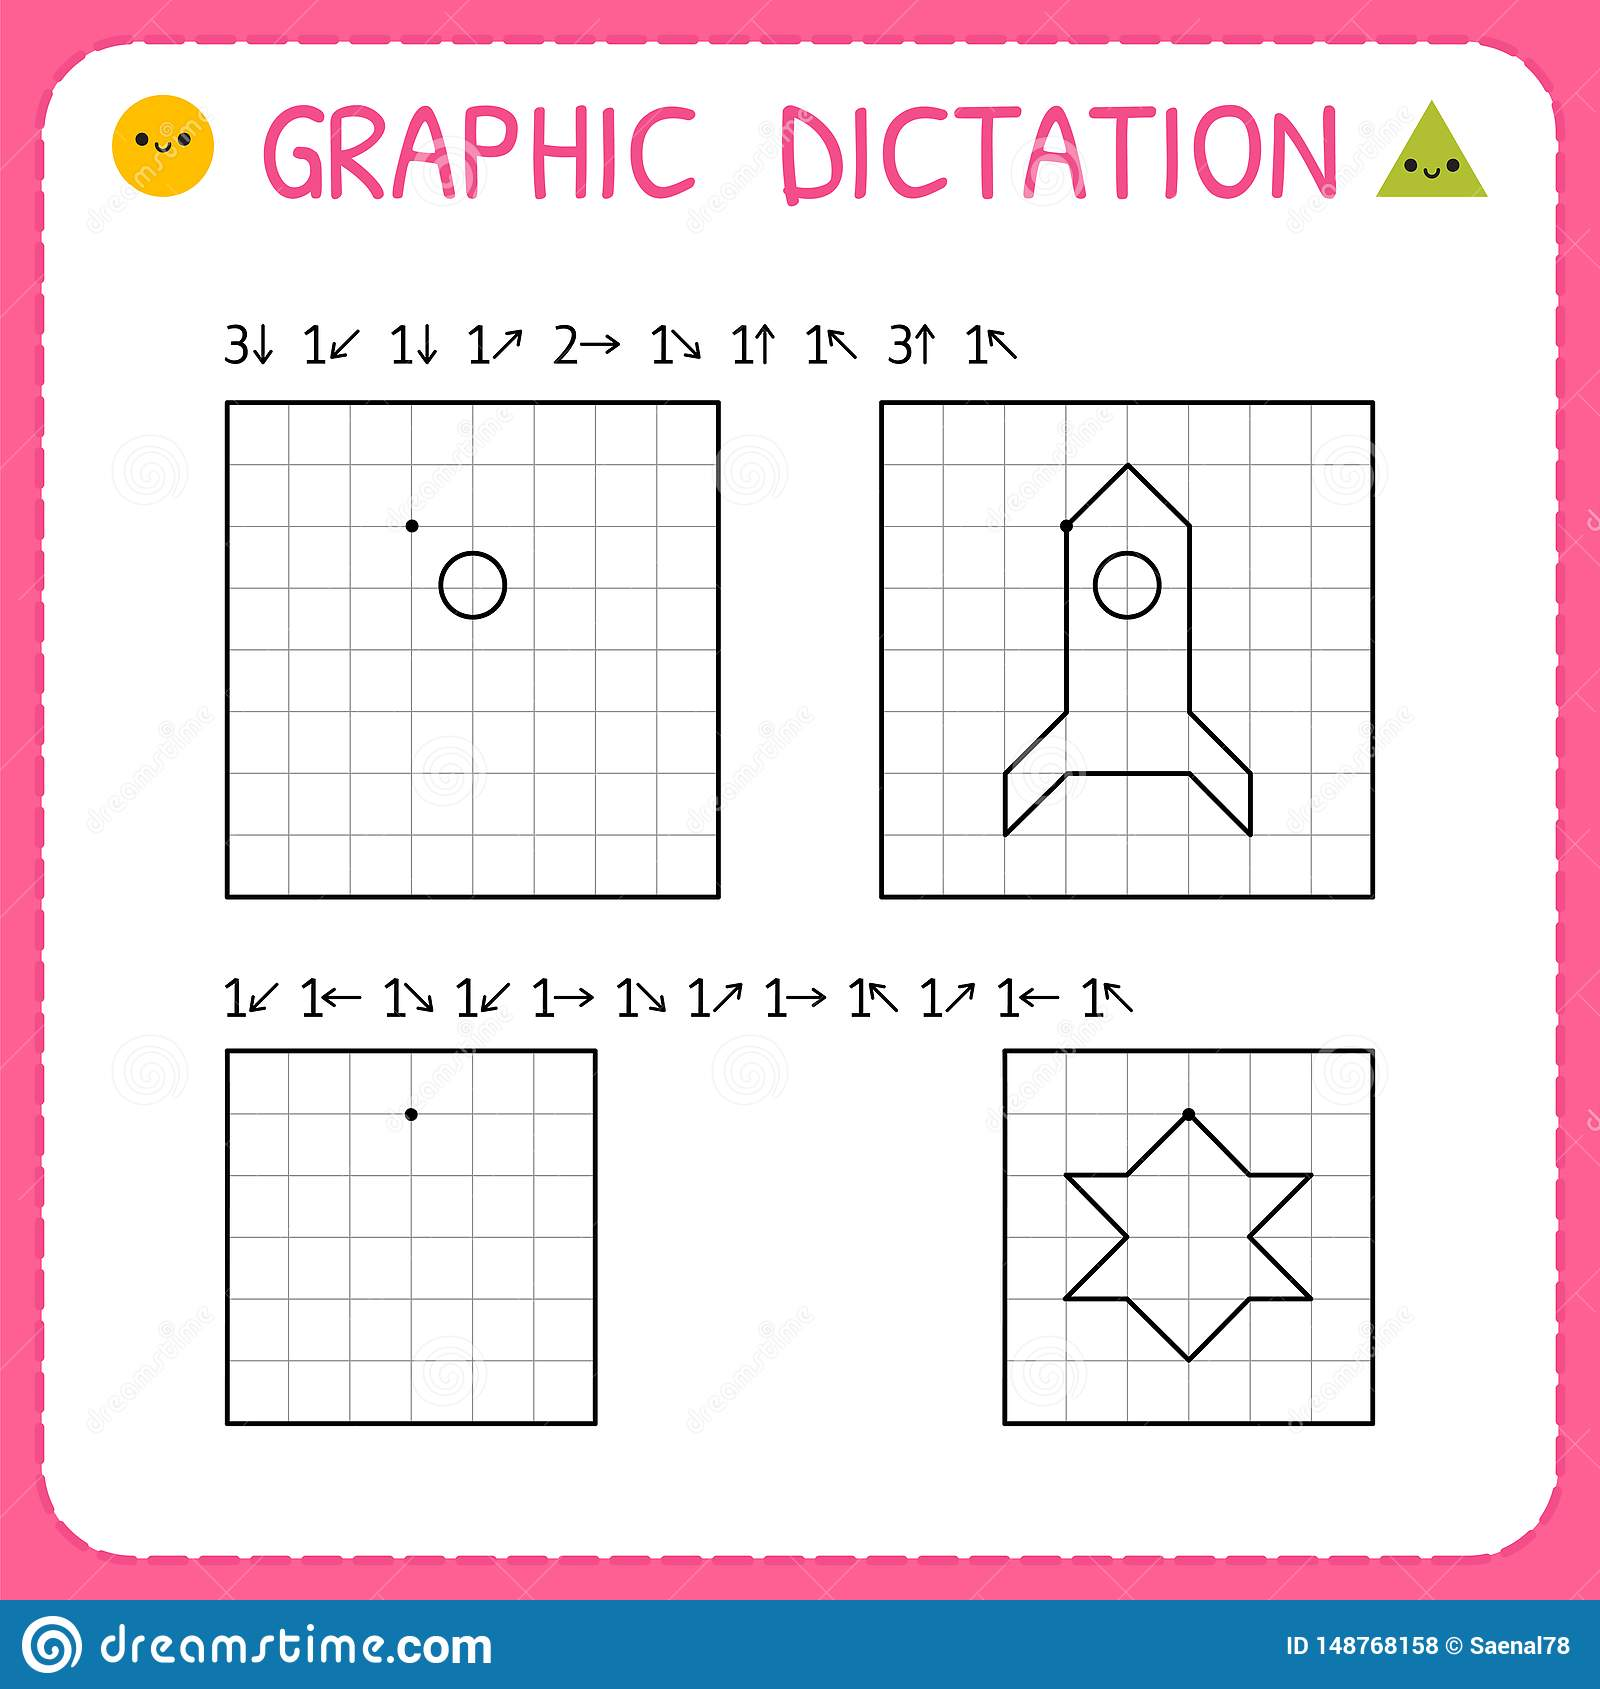 Graphic Dictation Working Pages For Children